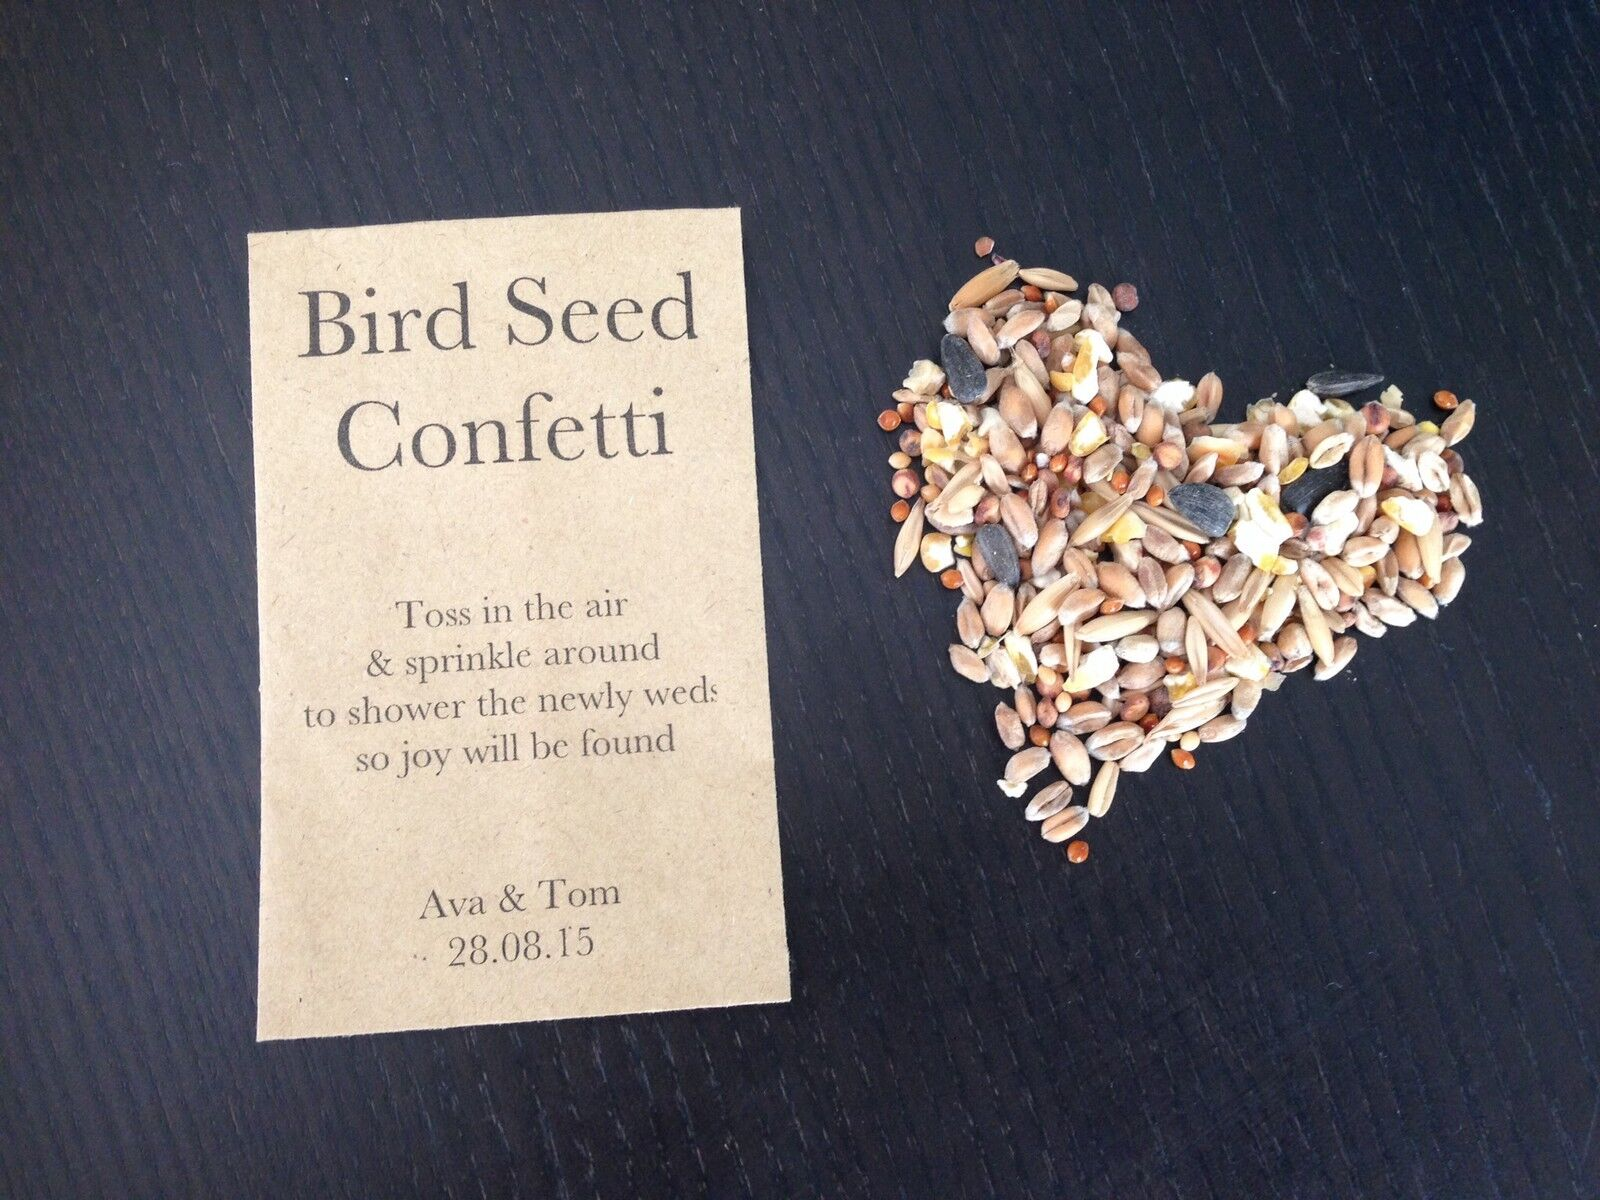 10 X Bird Seed Confetti Envelopes Free Personalisation